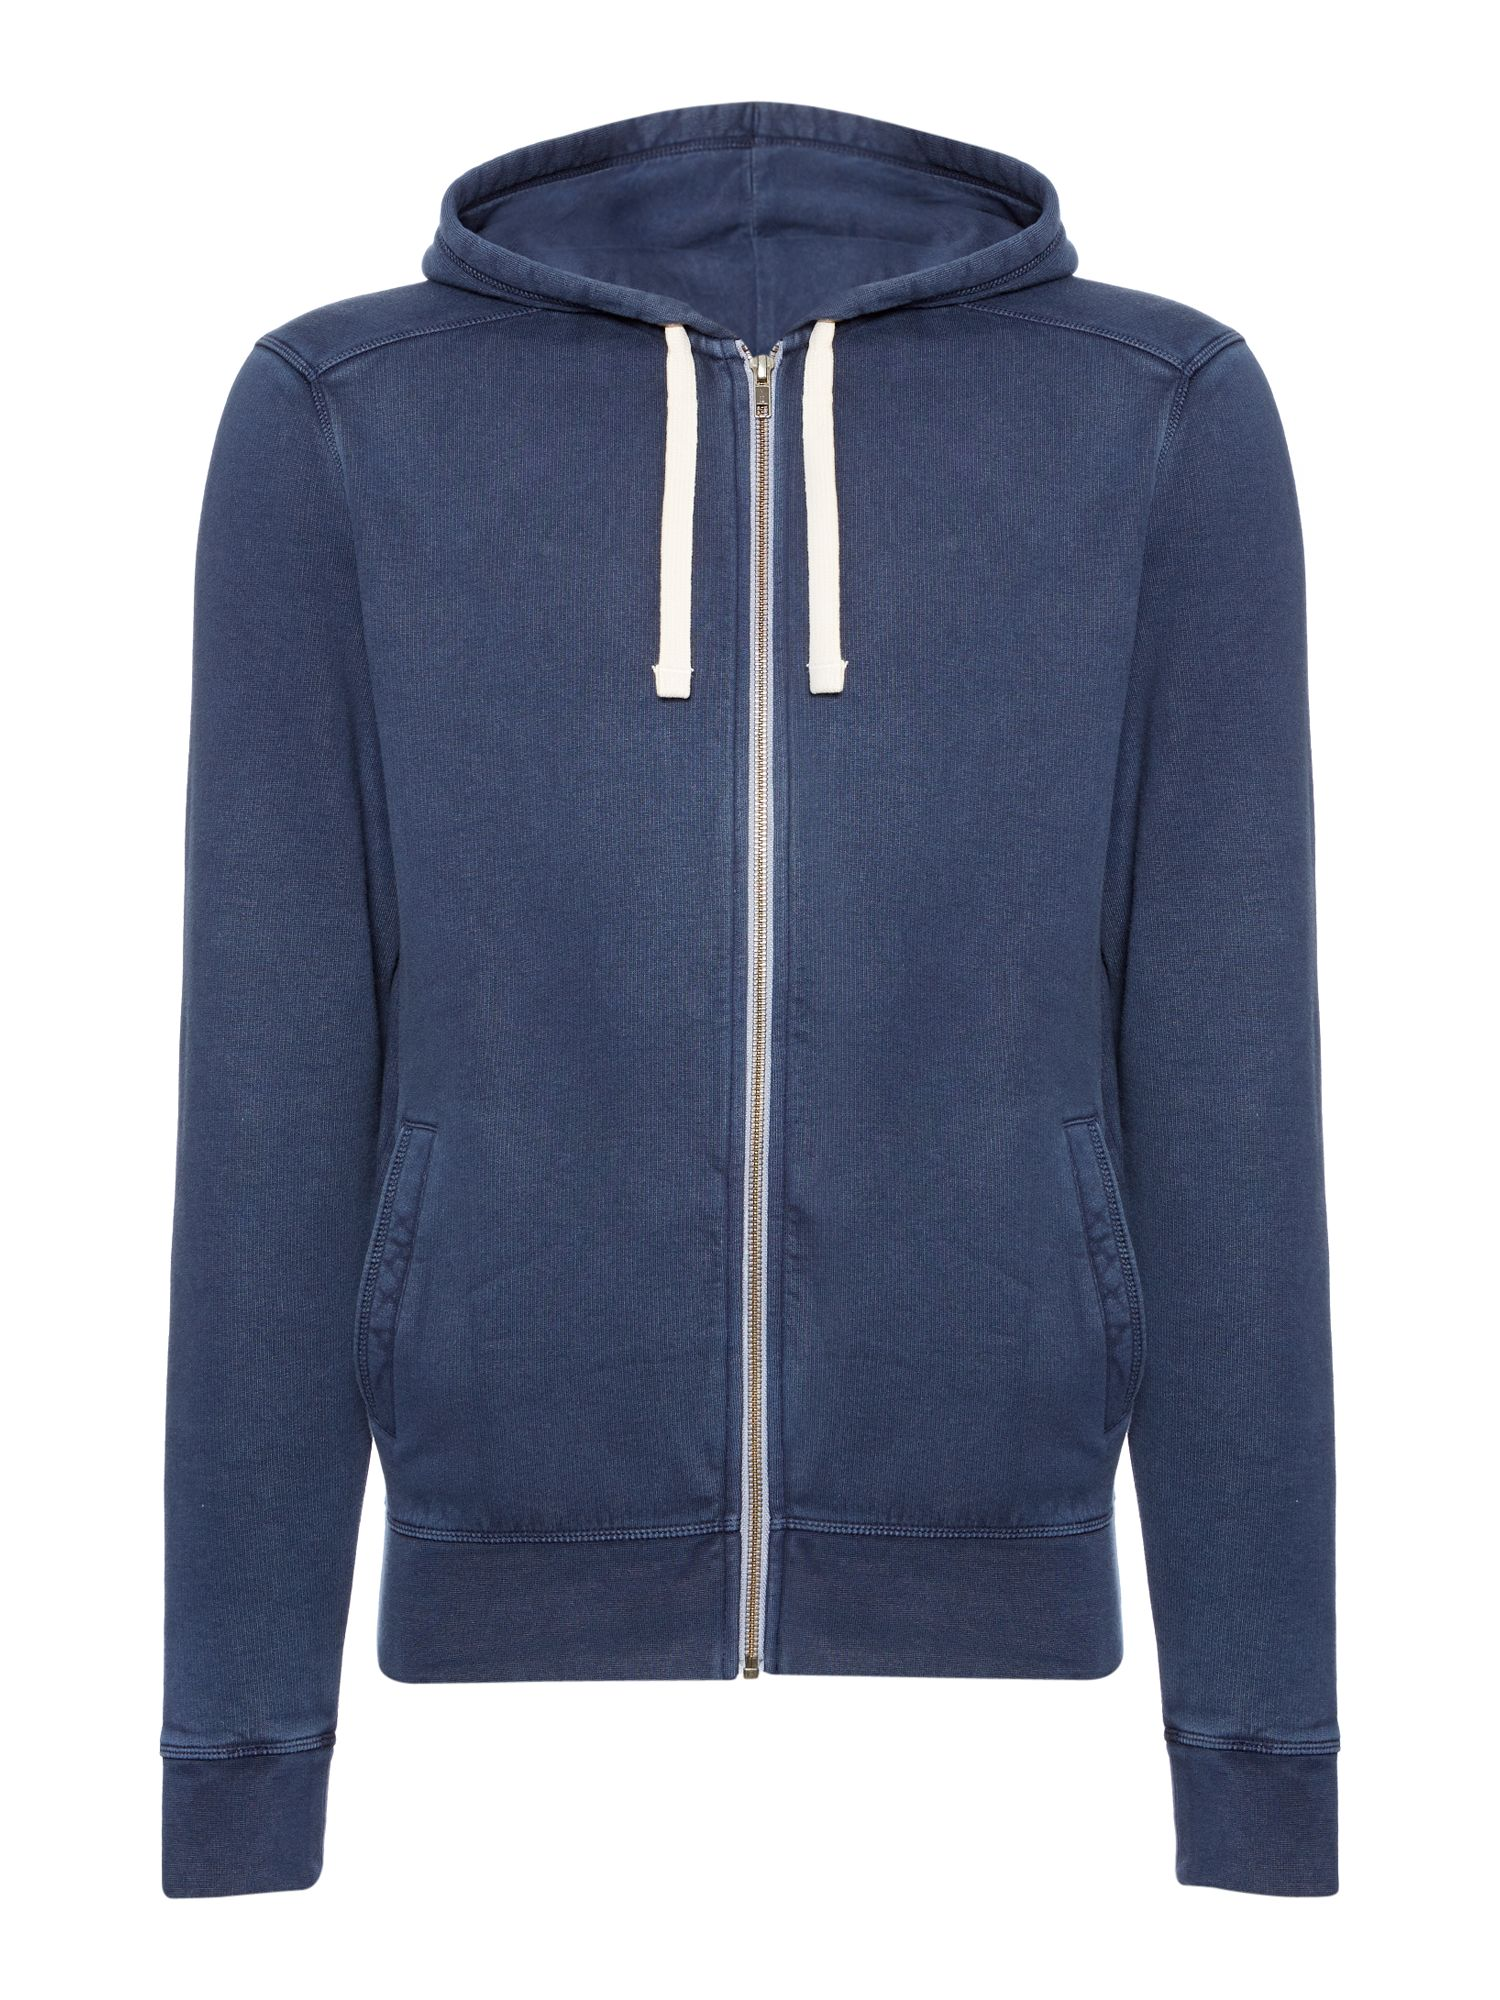 Manhatten Hoody